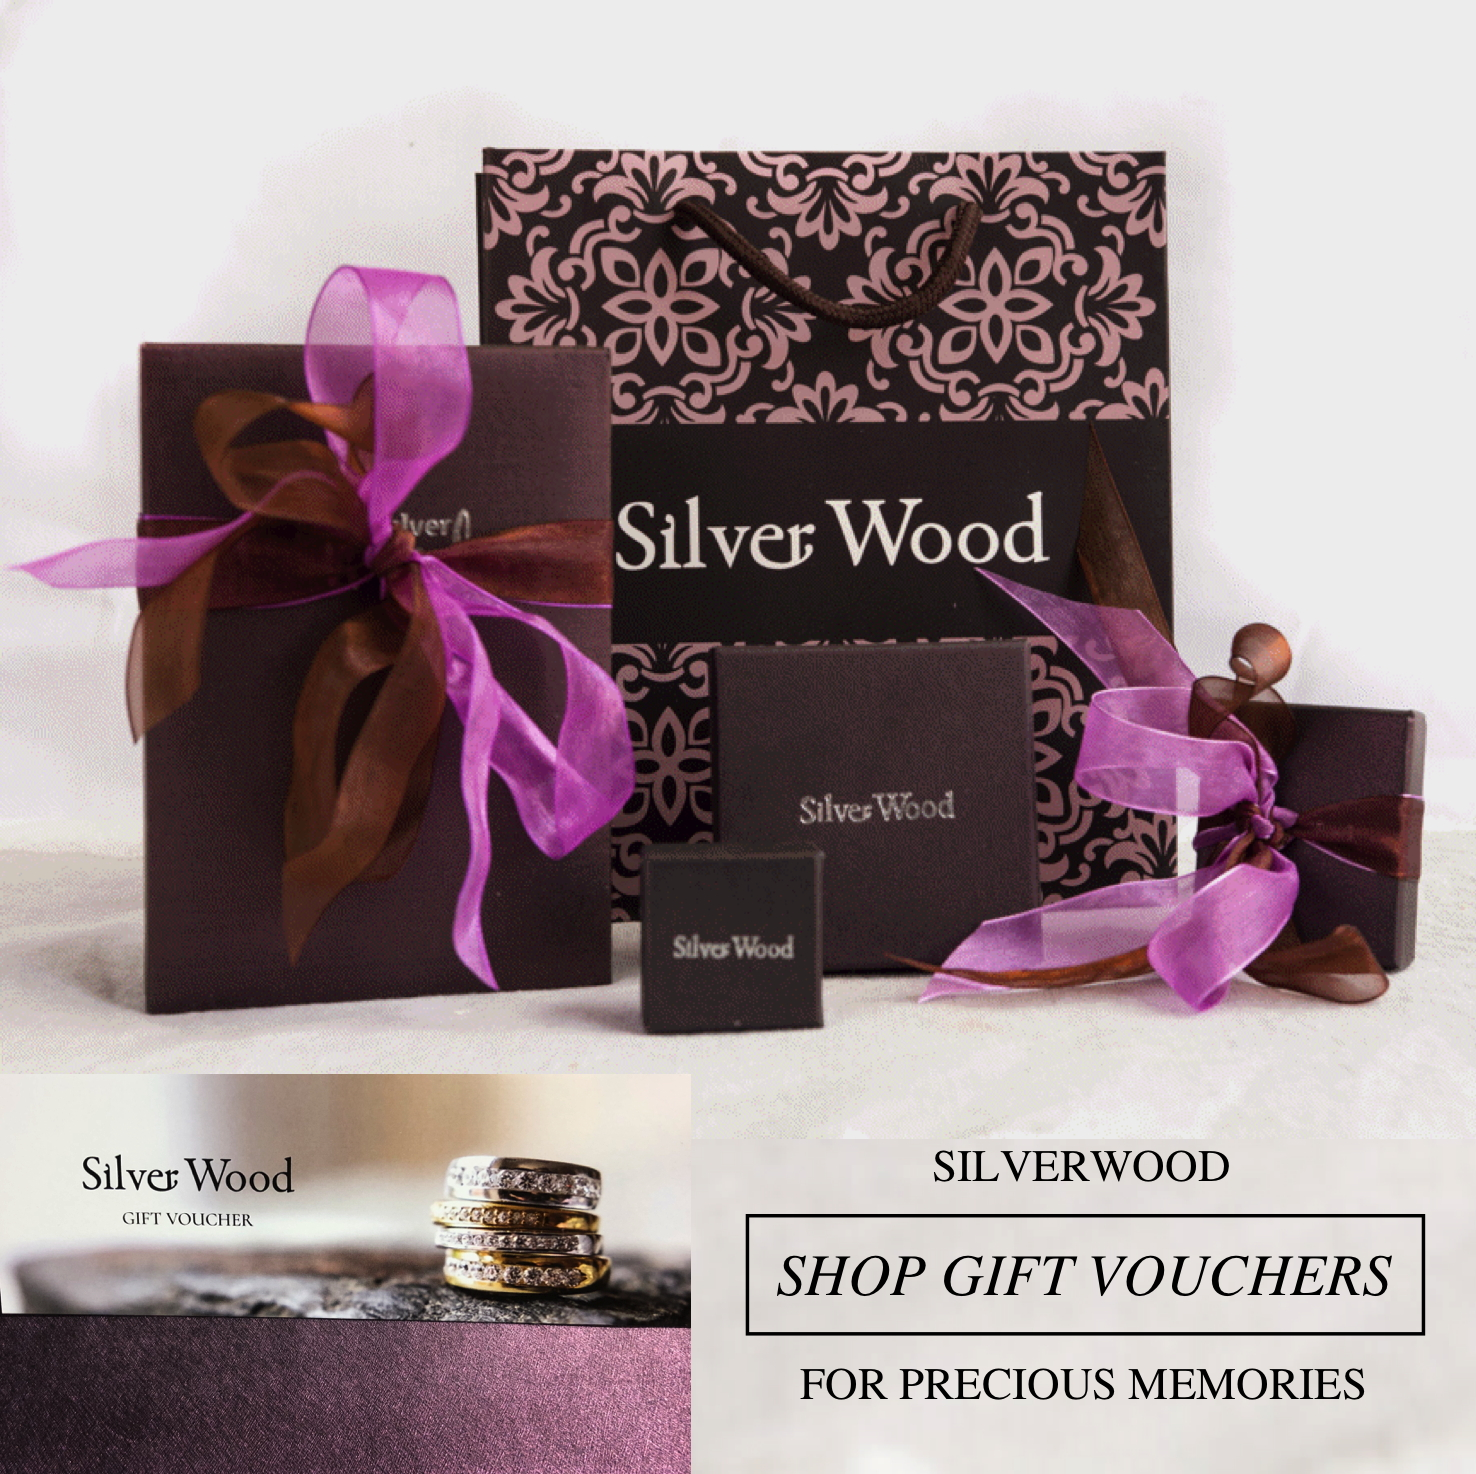 Silverwood gift voucher and gift packaging ribbons and bows